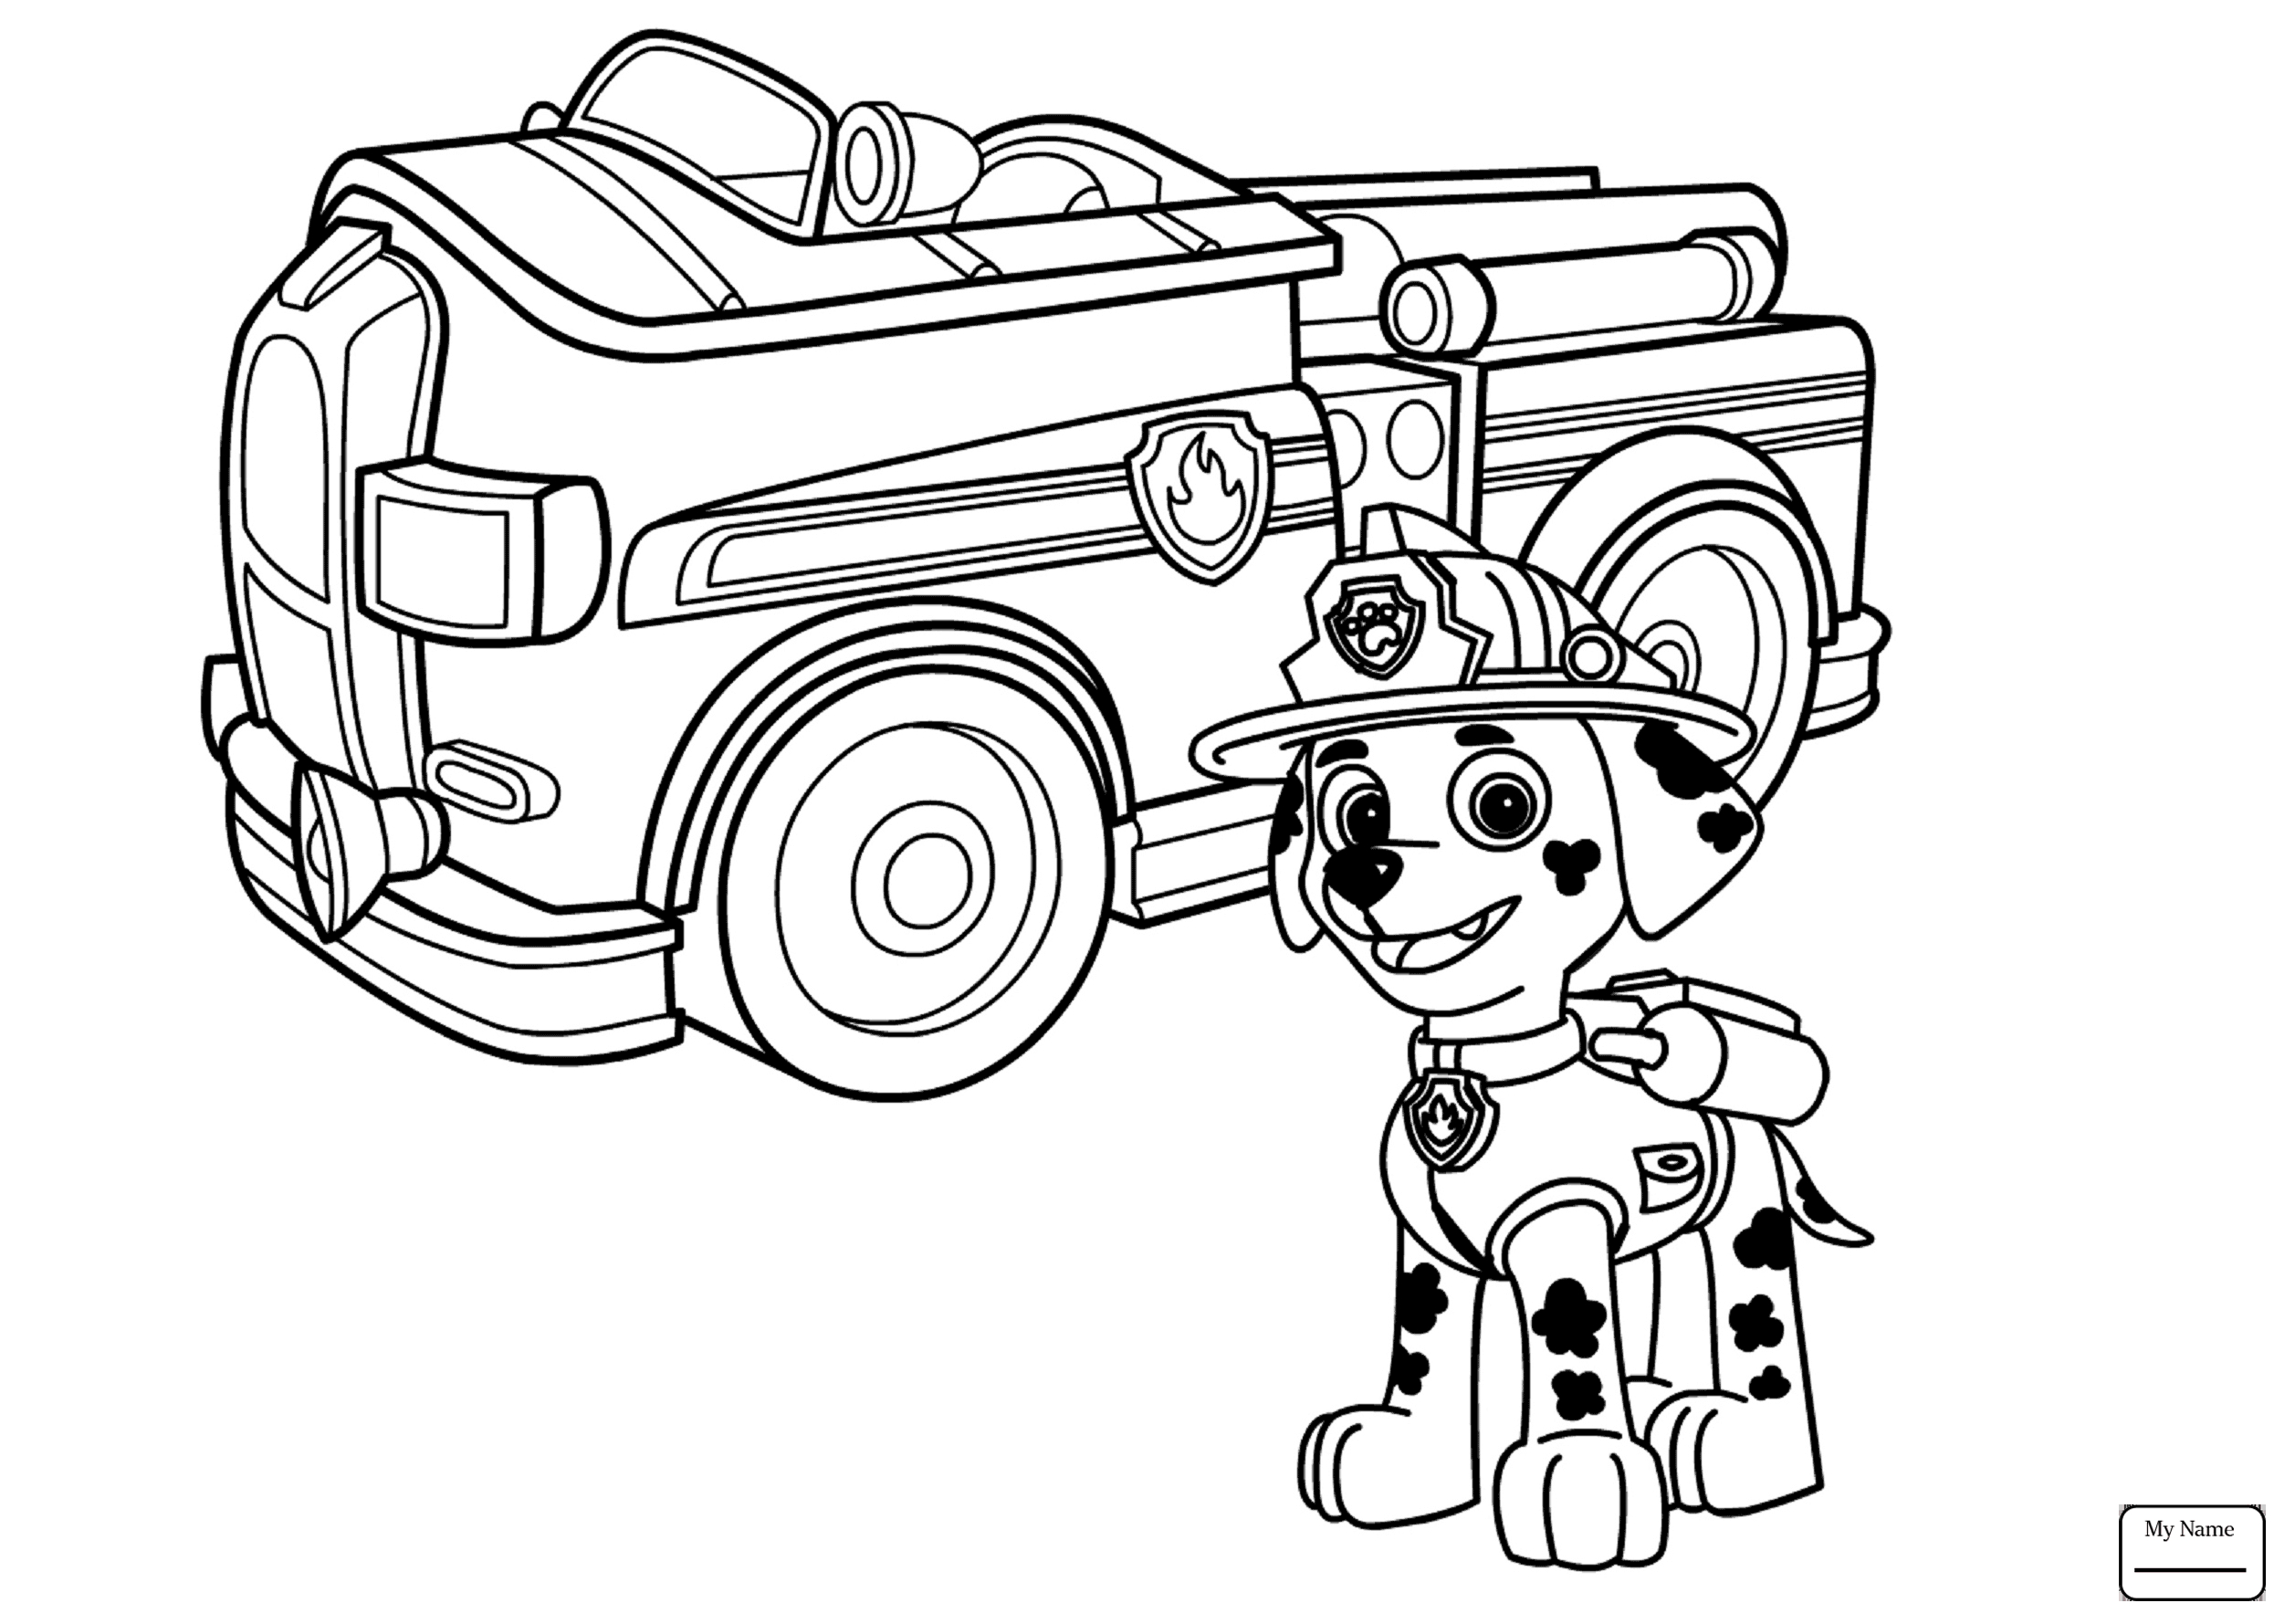 paw patrol coloring rubble paw patrol coloring pages printable free coloring sheets coloring paw rubble patrol